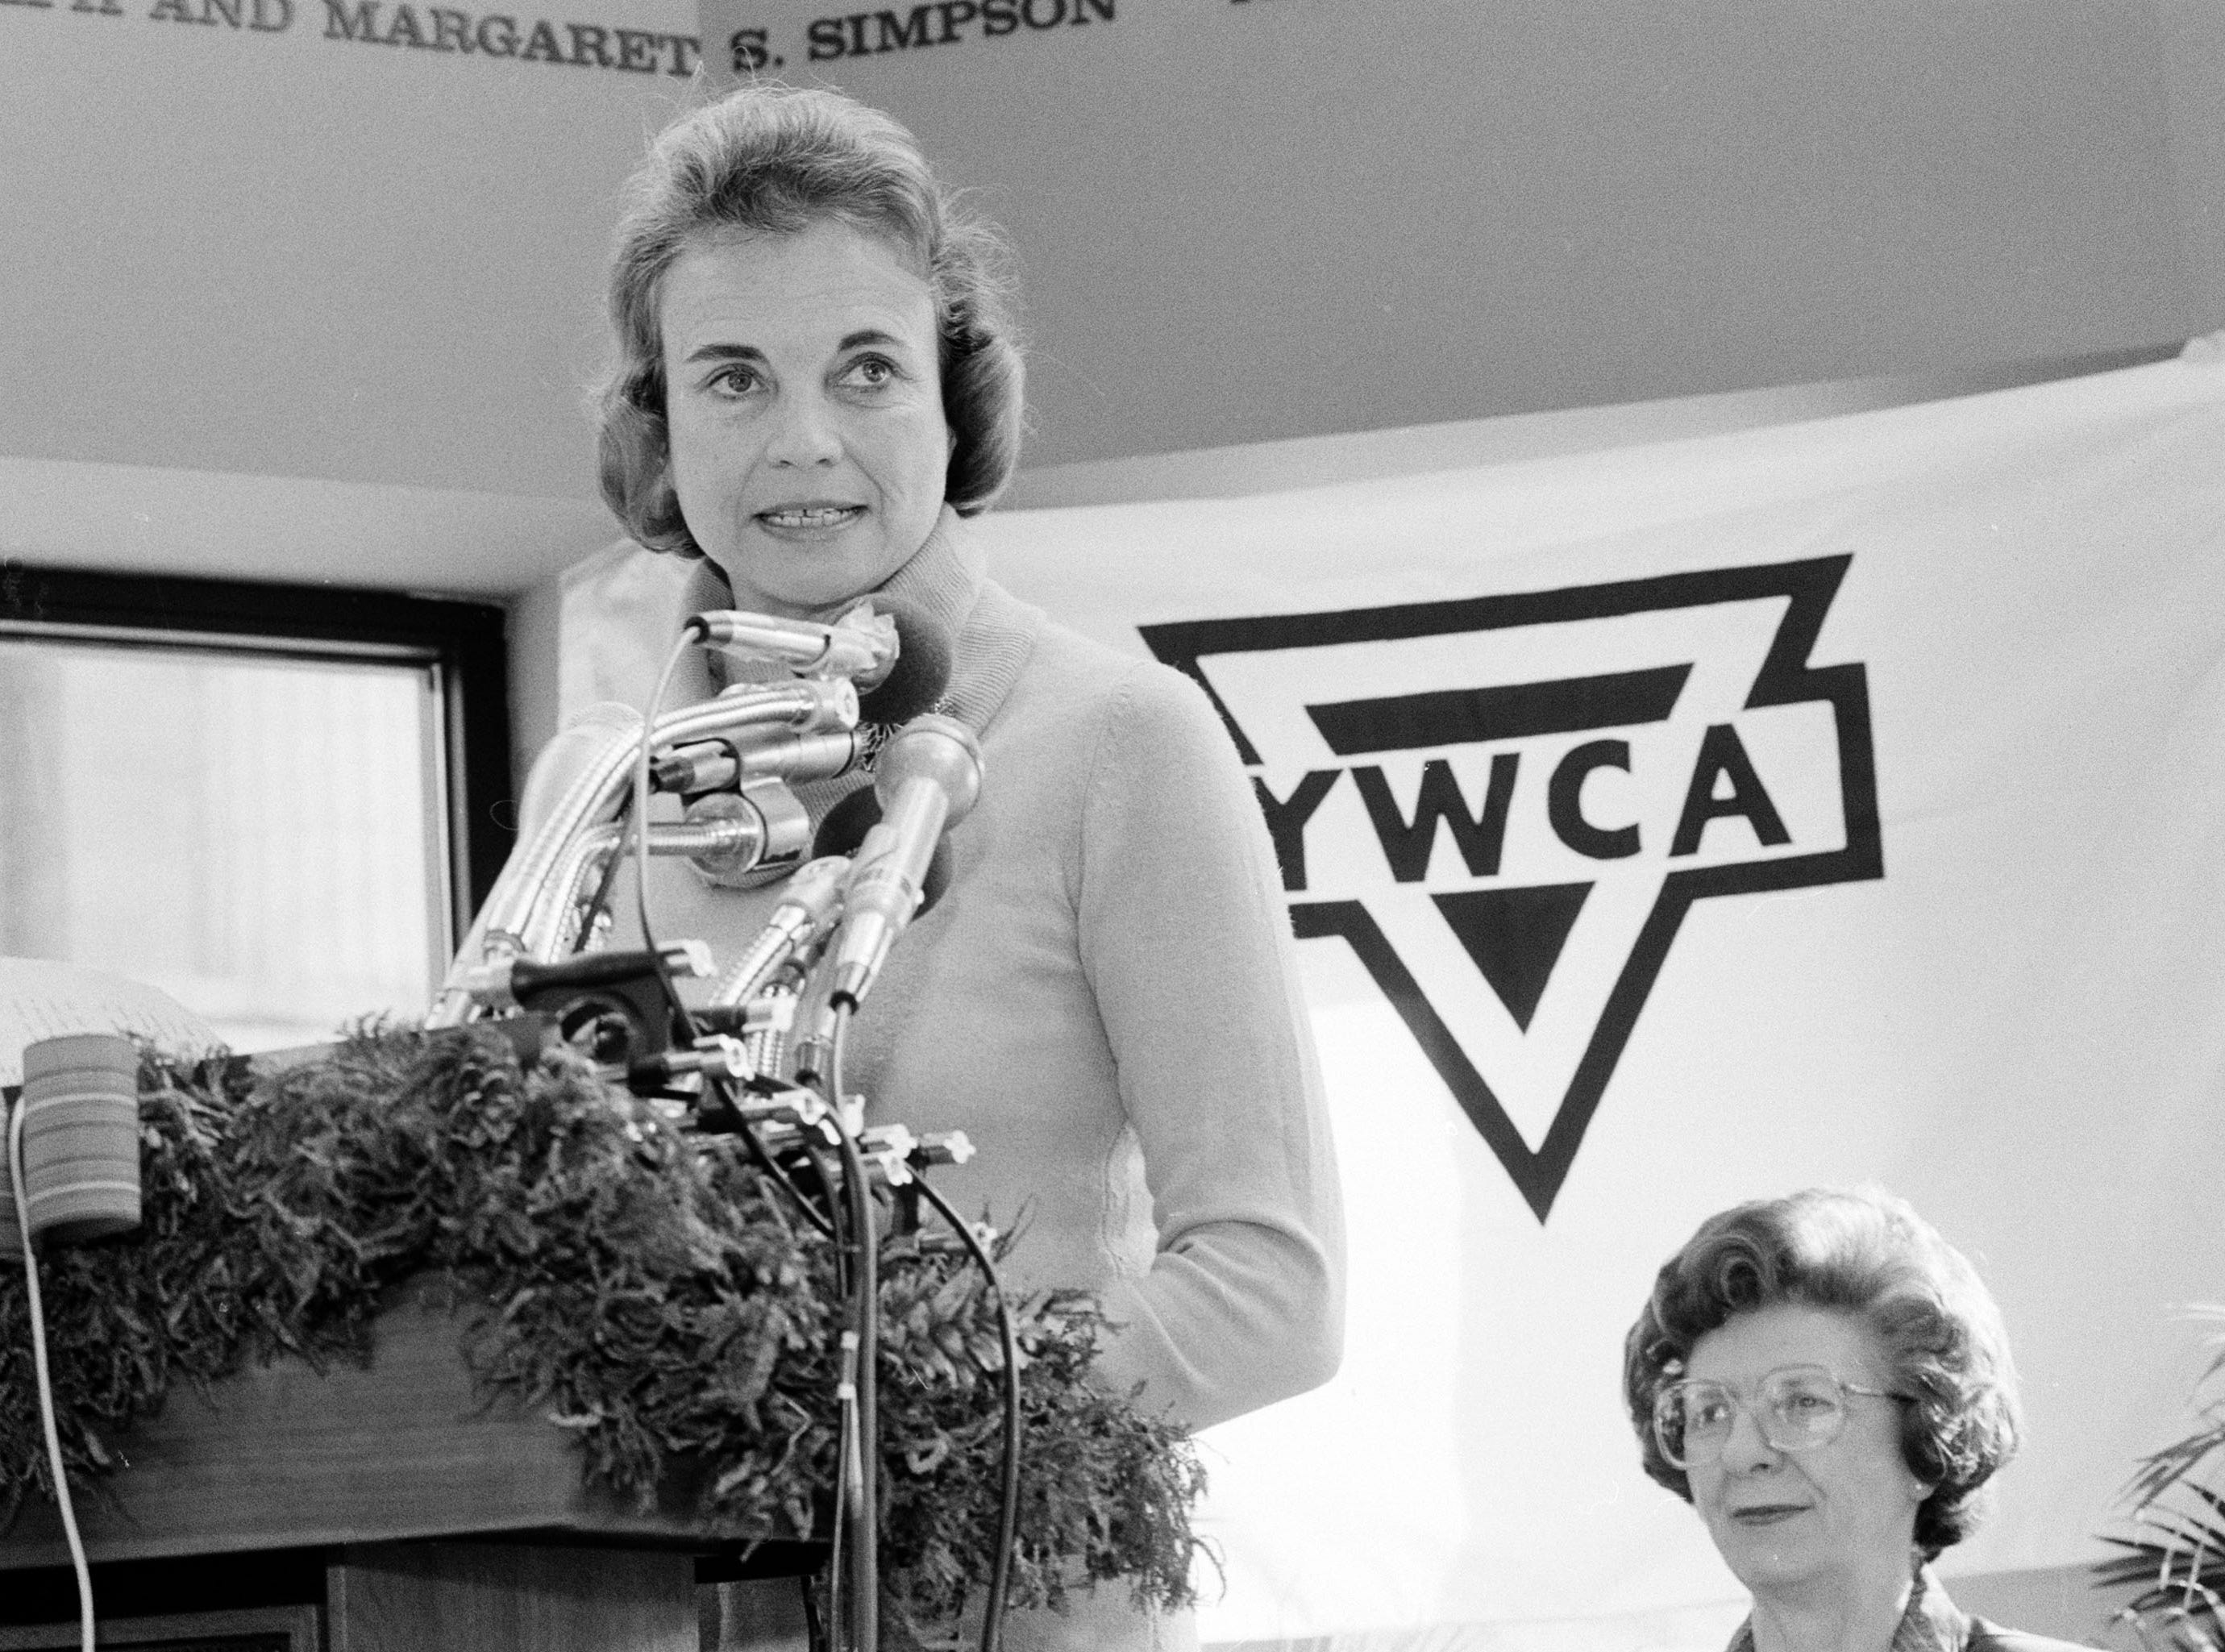 U.S. Supreme Court Justice Sandra Day O'Connor speaks during the dedication ceremonies for the opening of the new headquarters for the YWCA, Dec. 10, 1981, in Washington.  Woman at right is unidentified.